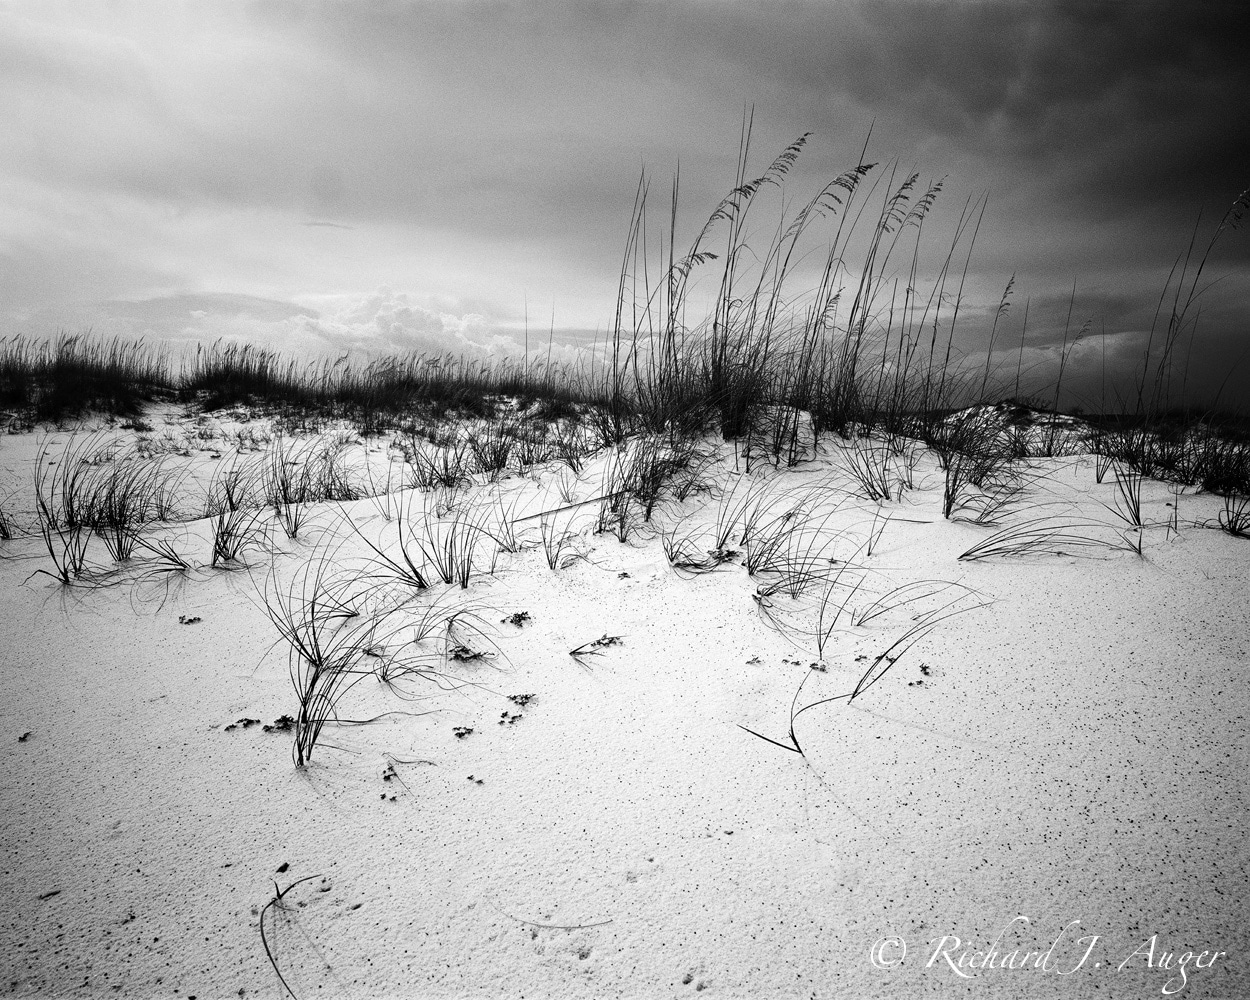 Pensacola Beach 1, Escambia County, FL